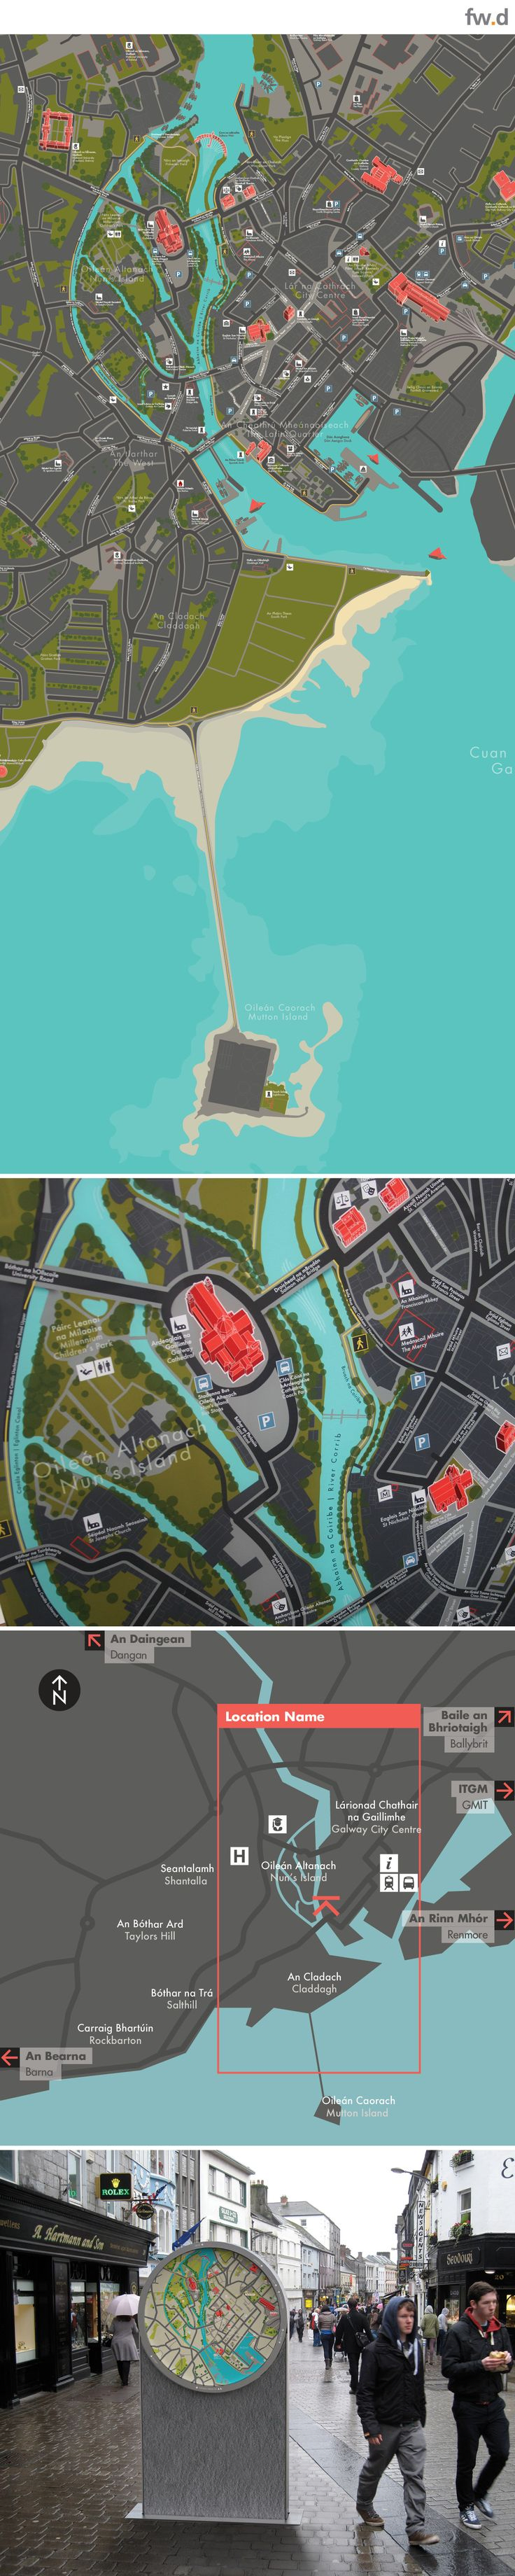 Concept pedestrian wayfinding map designs for Galway